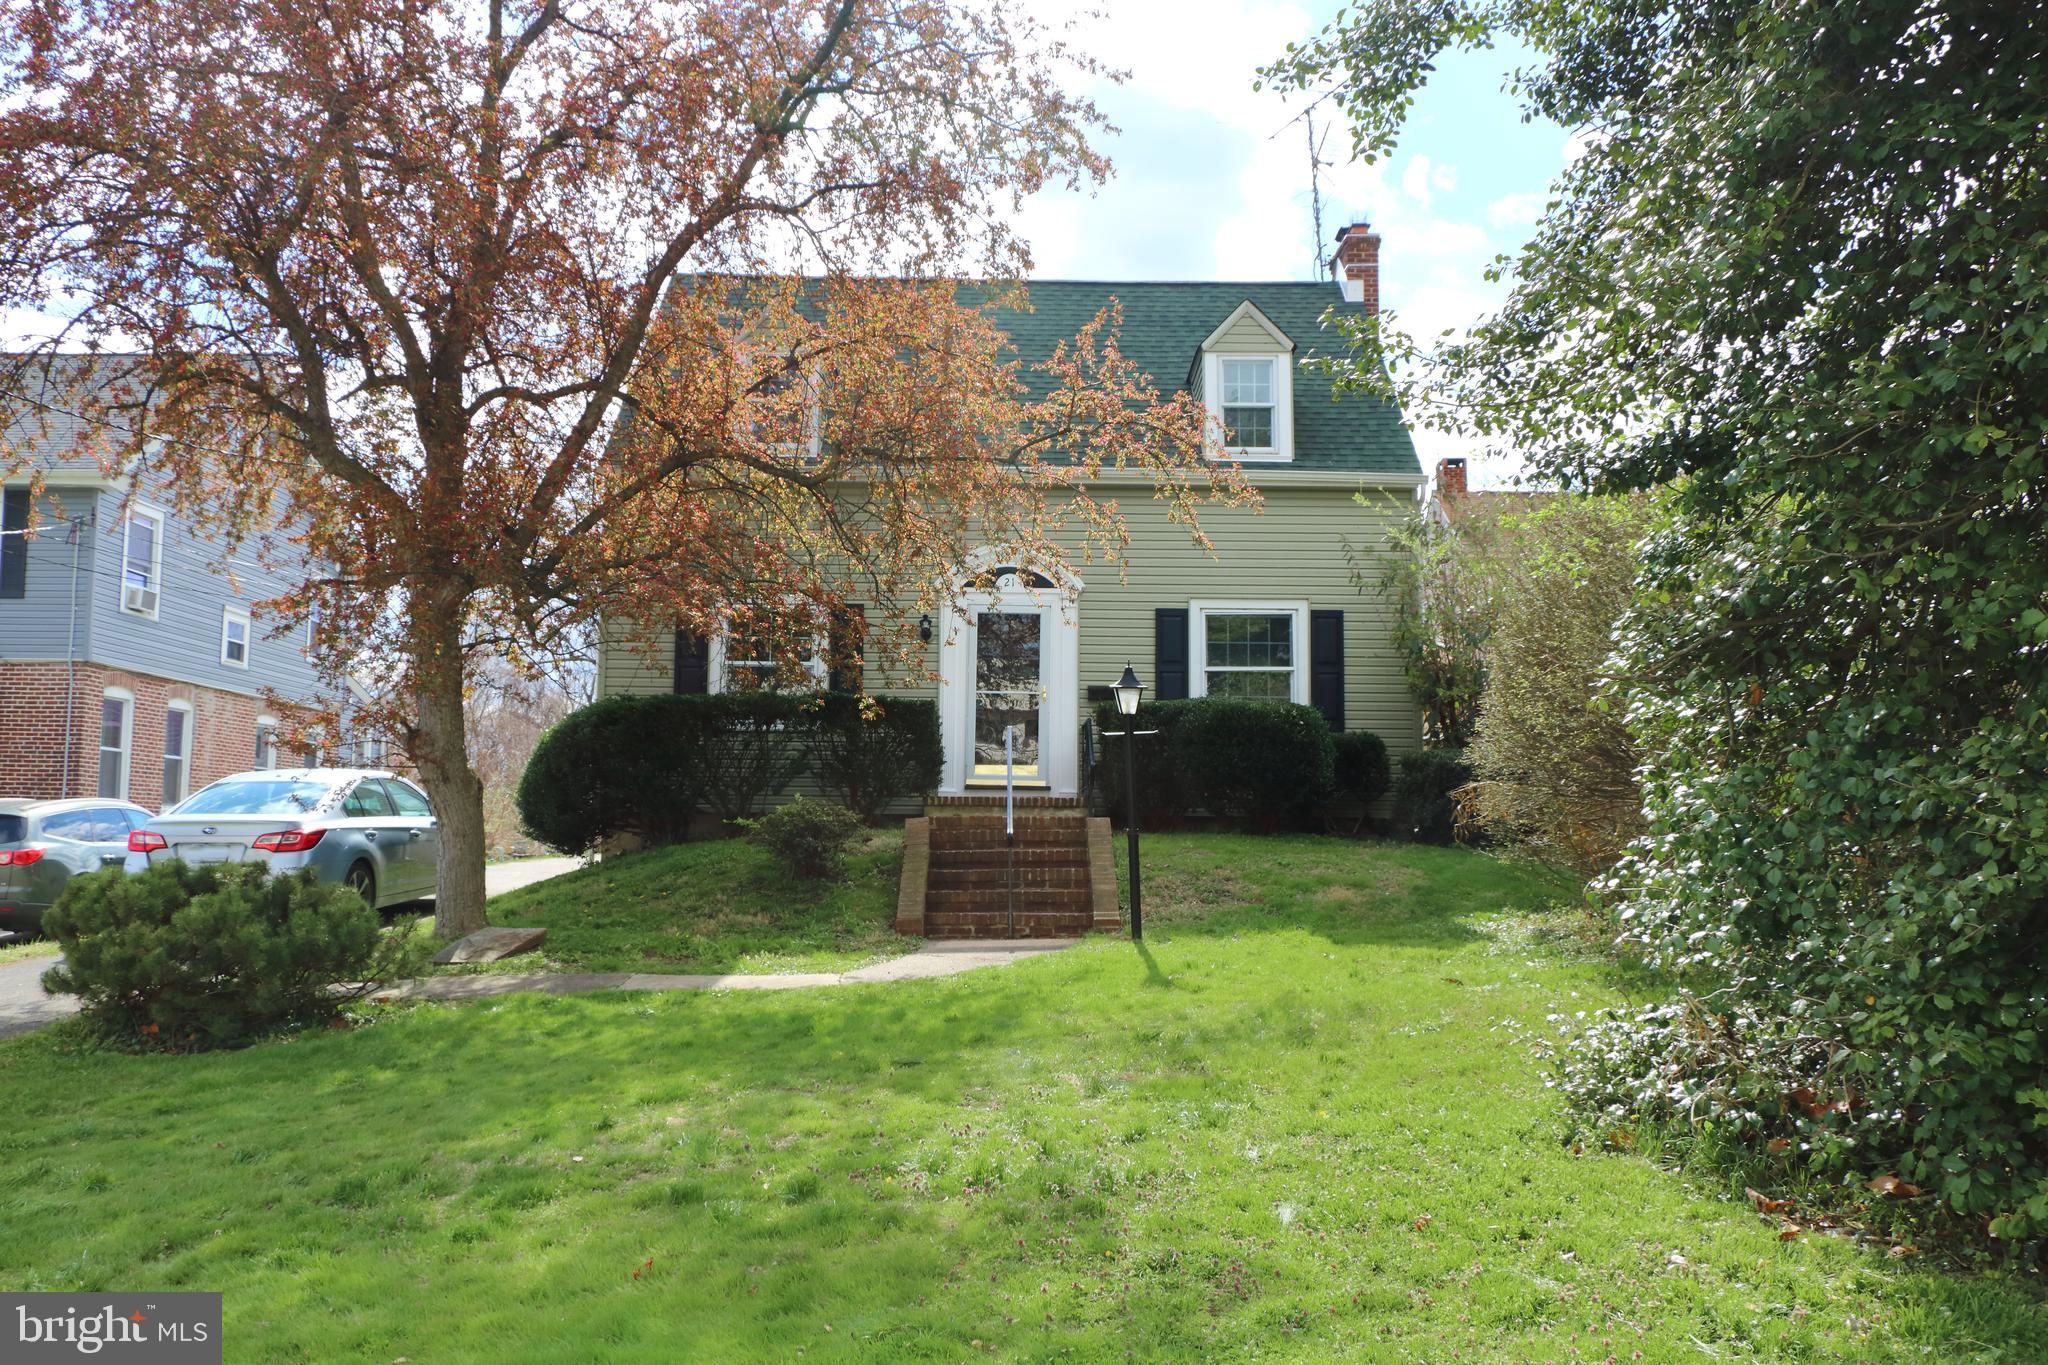 Great cozy property just down the road from Archmere Academy! This house has 3 bedrooms, 1 full bath